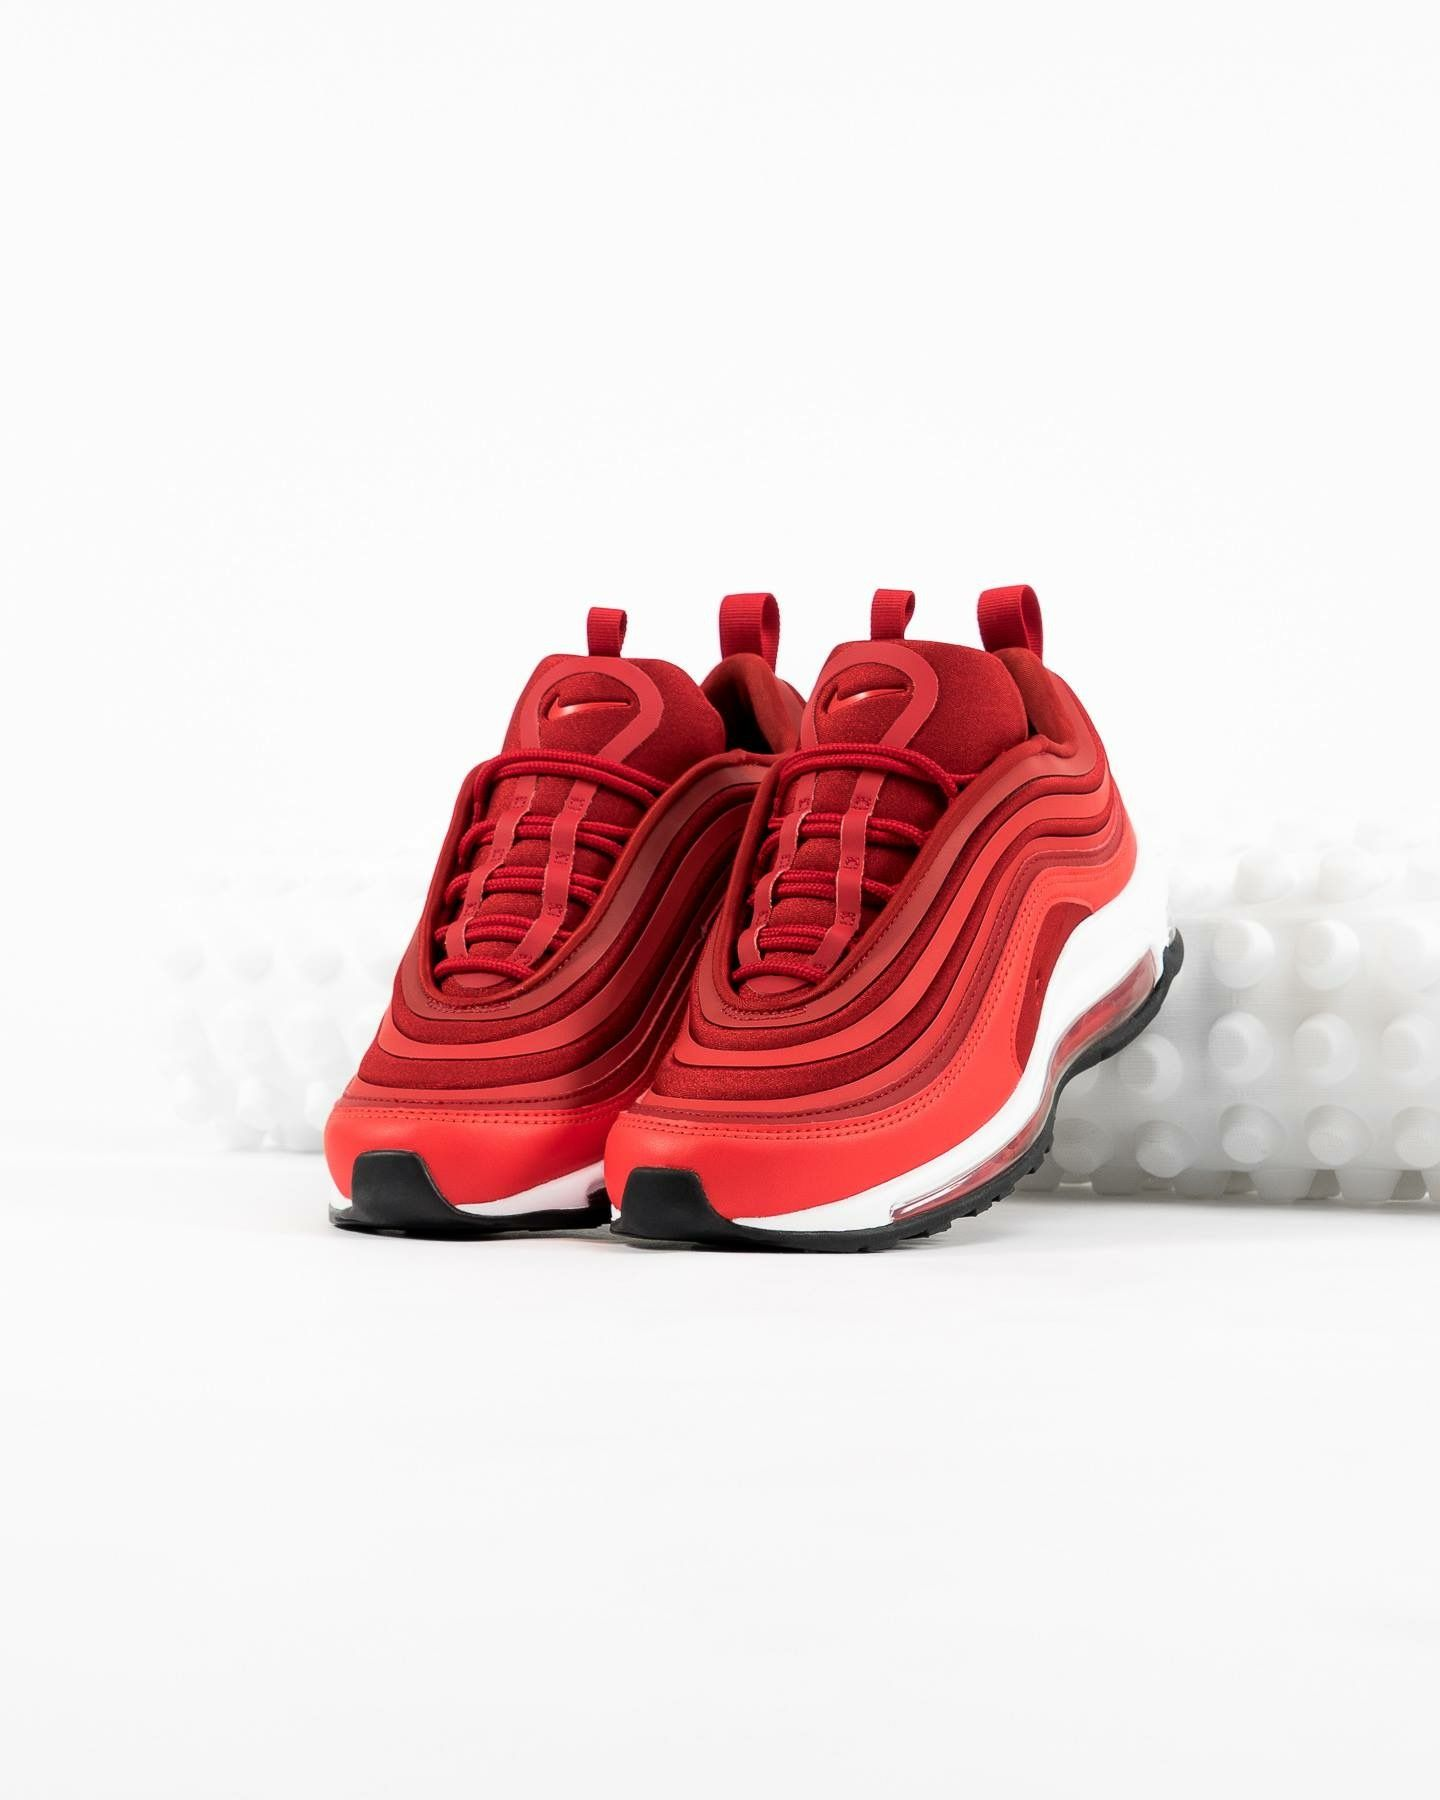 56681c4a5f7 Nike Air Max 97 Ultra  Red